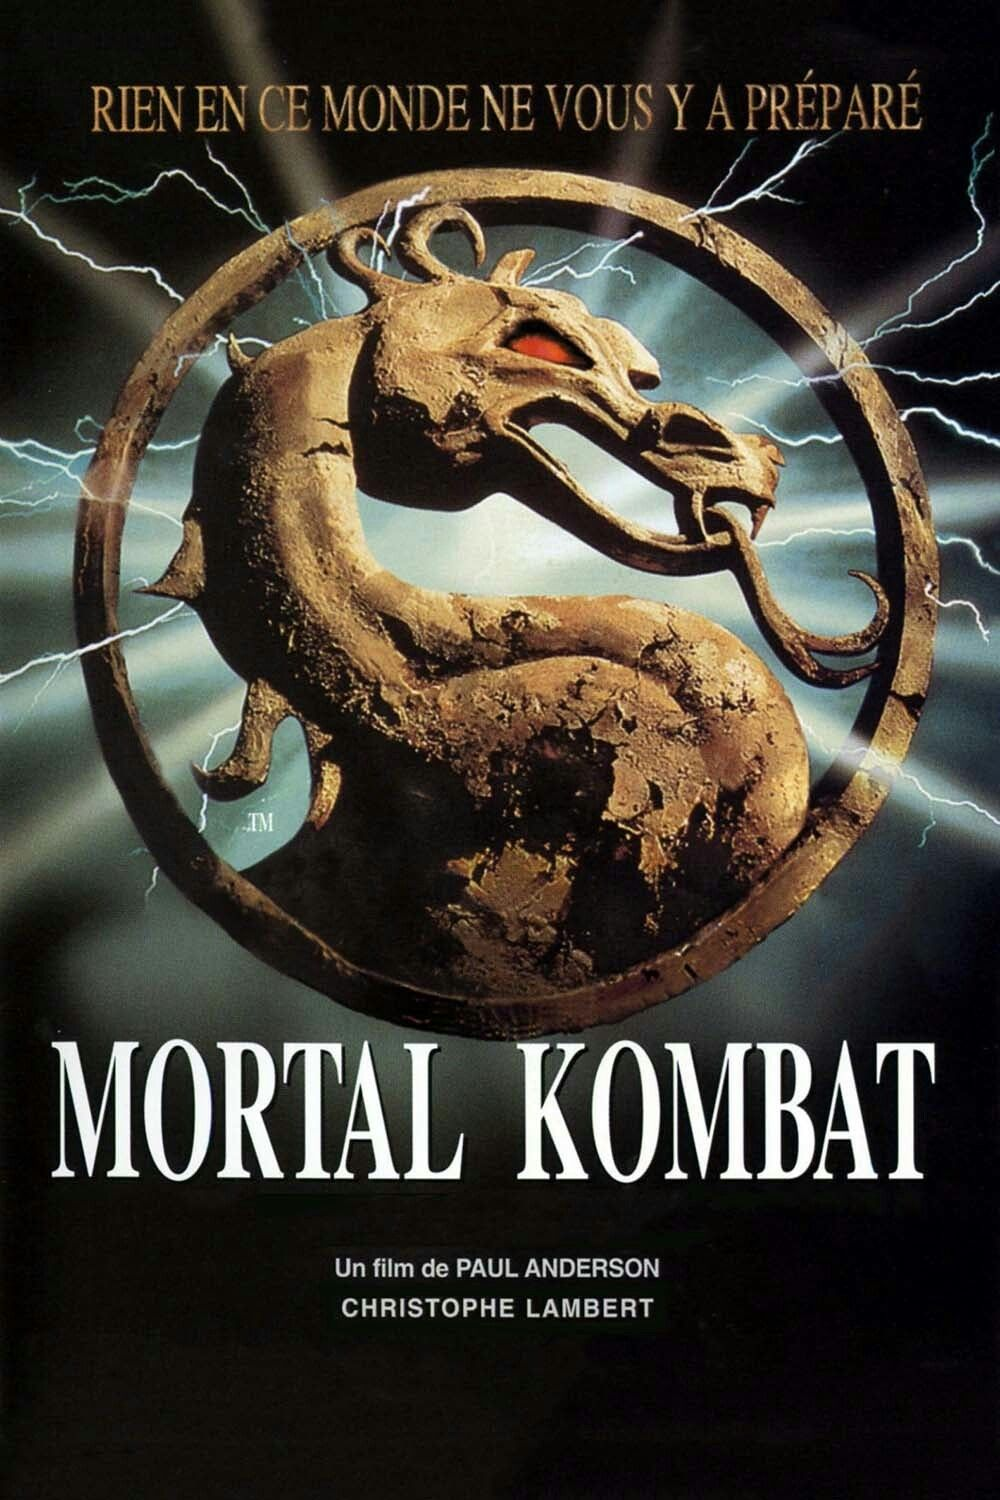 Mortal Kombat Movie Poster Fantastic Movie Posters Scifi Movie